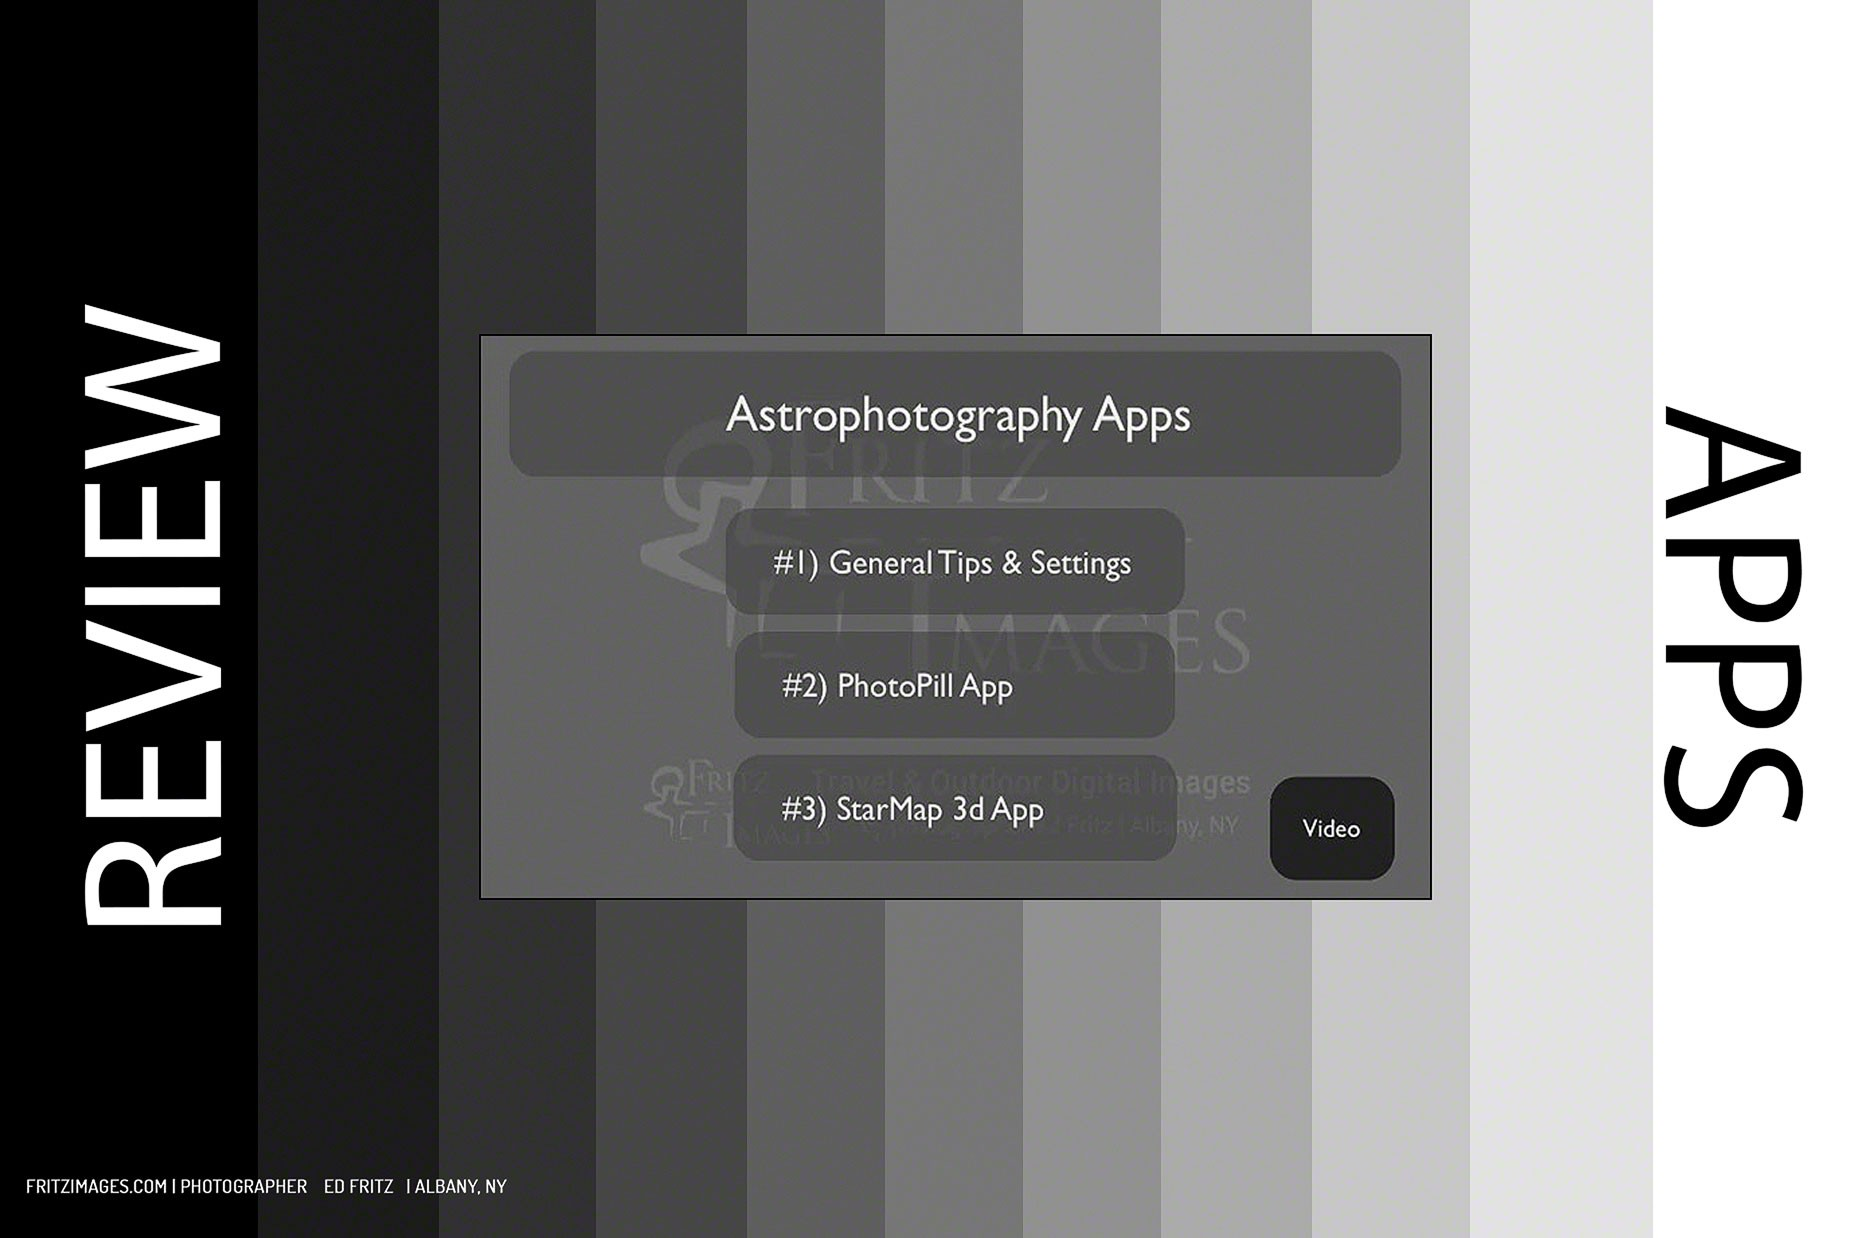 FritzImages | Travel and Outdoor Digital Images | image name = FIFP Astrophotography Apps and Tips iop